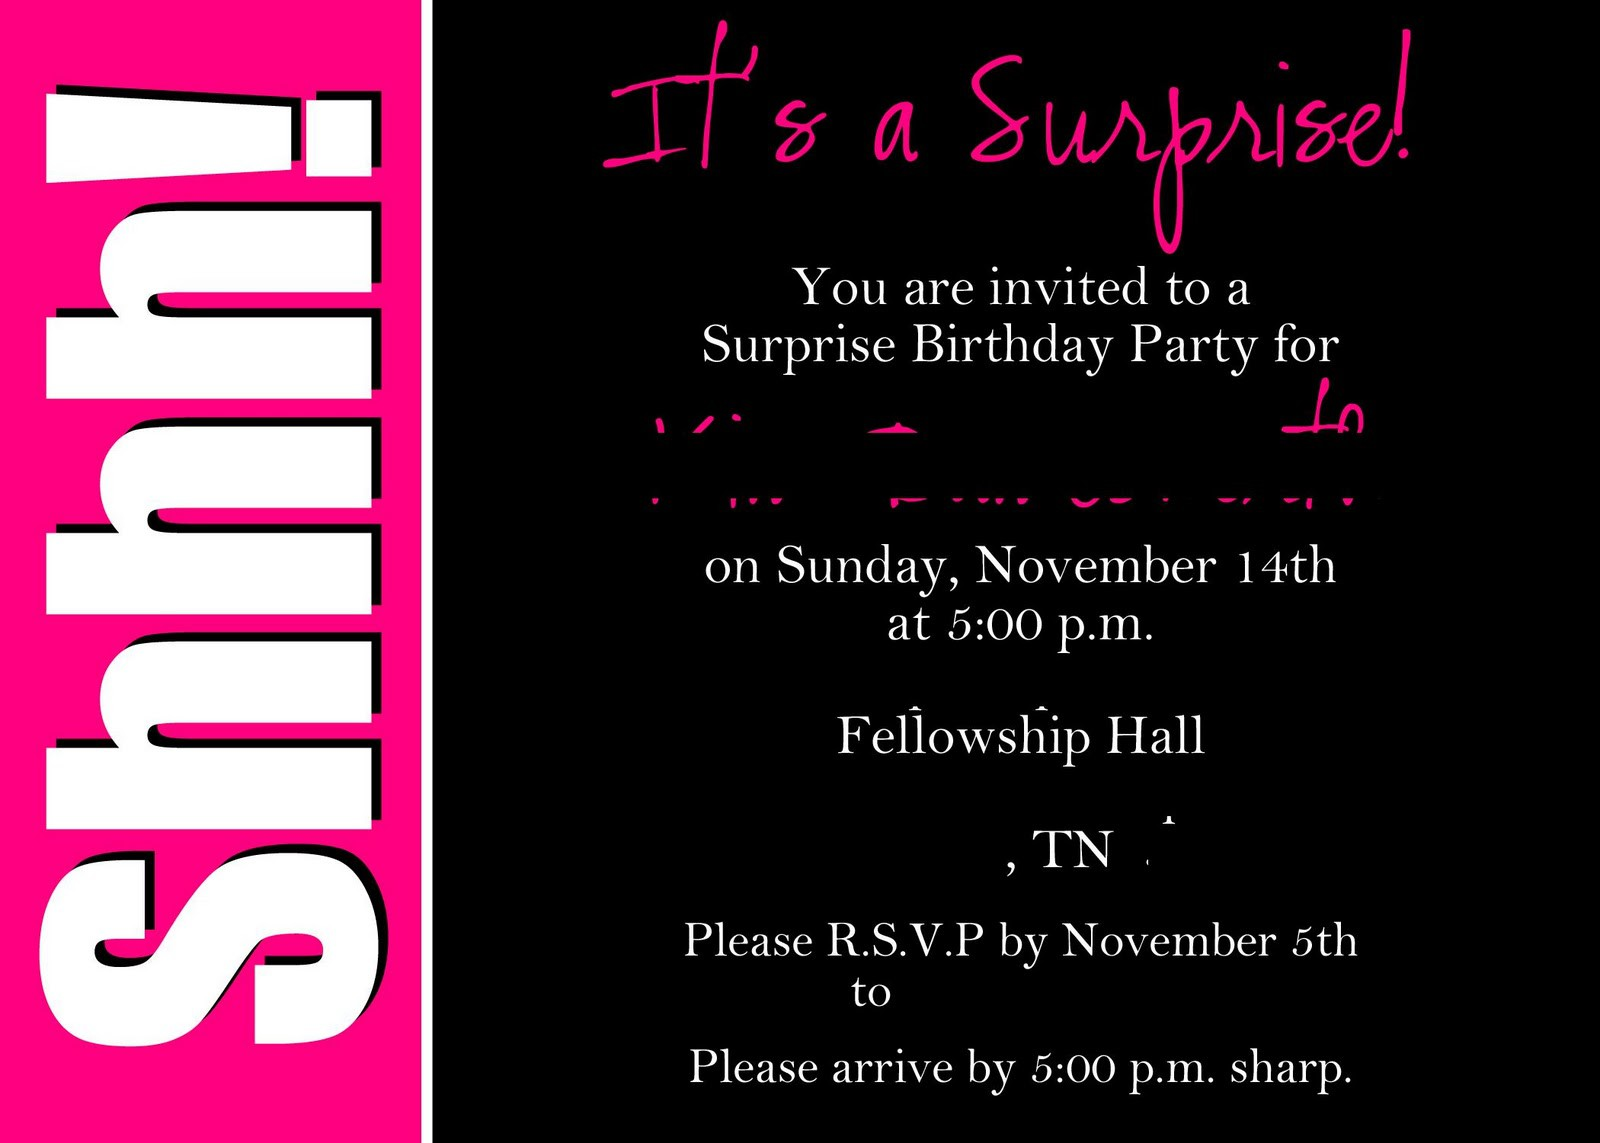 13th birthday invitations free templates ; free-printable-surprise-birthday-party-invitations-is-the-newest-and-best-concepts-of-surprising-Party-invitations-13